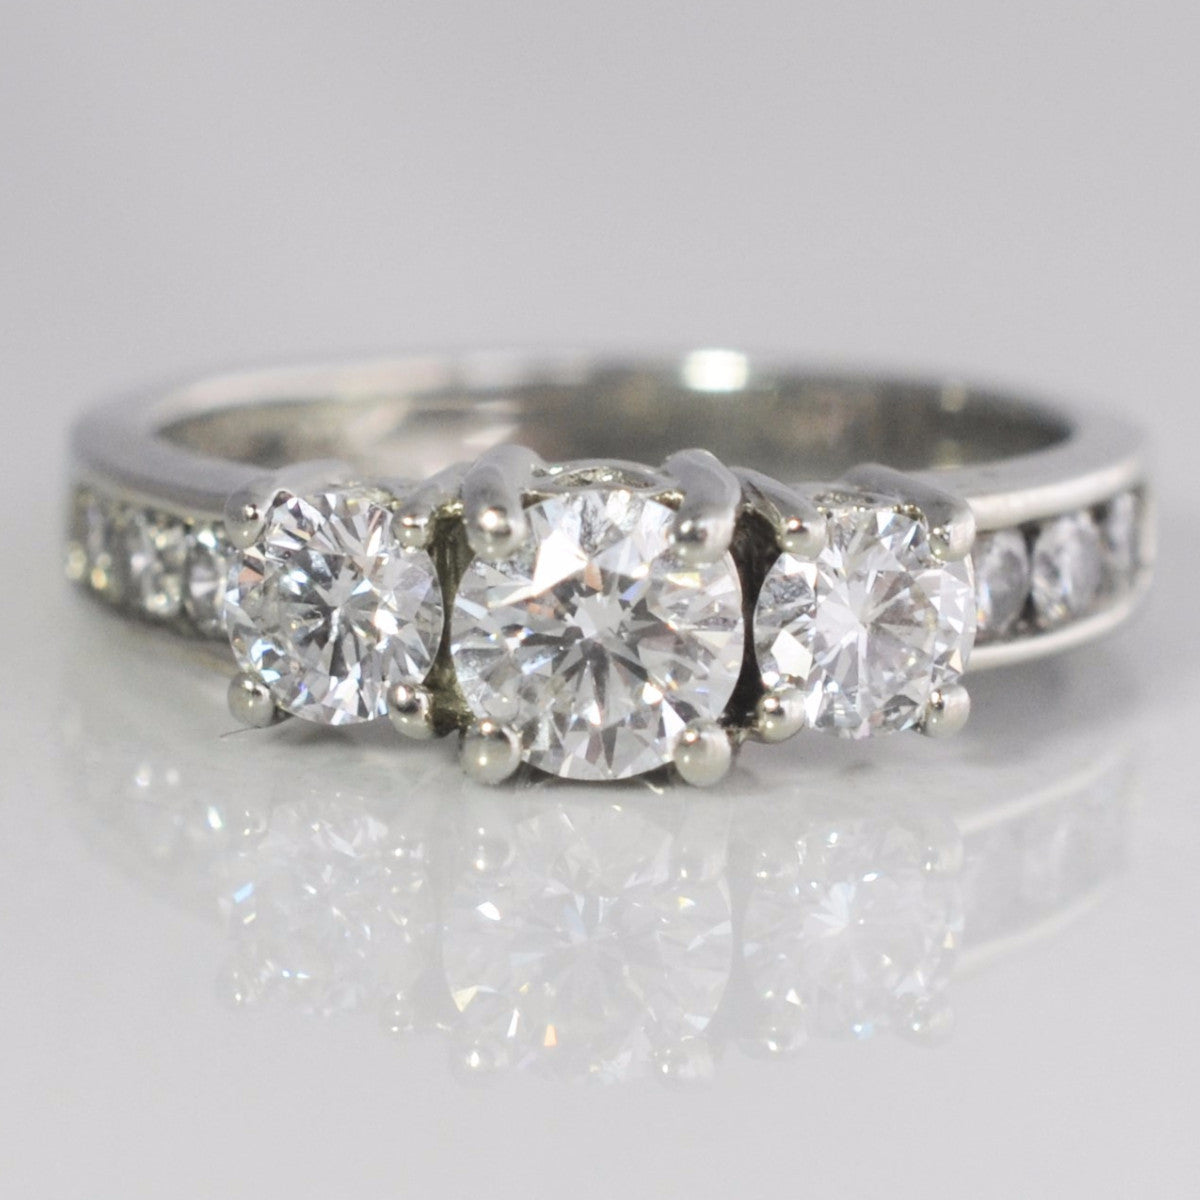 Stunning Three Stone Engagement Ring | 1.00 ctw, SZ 5 |